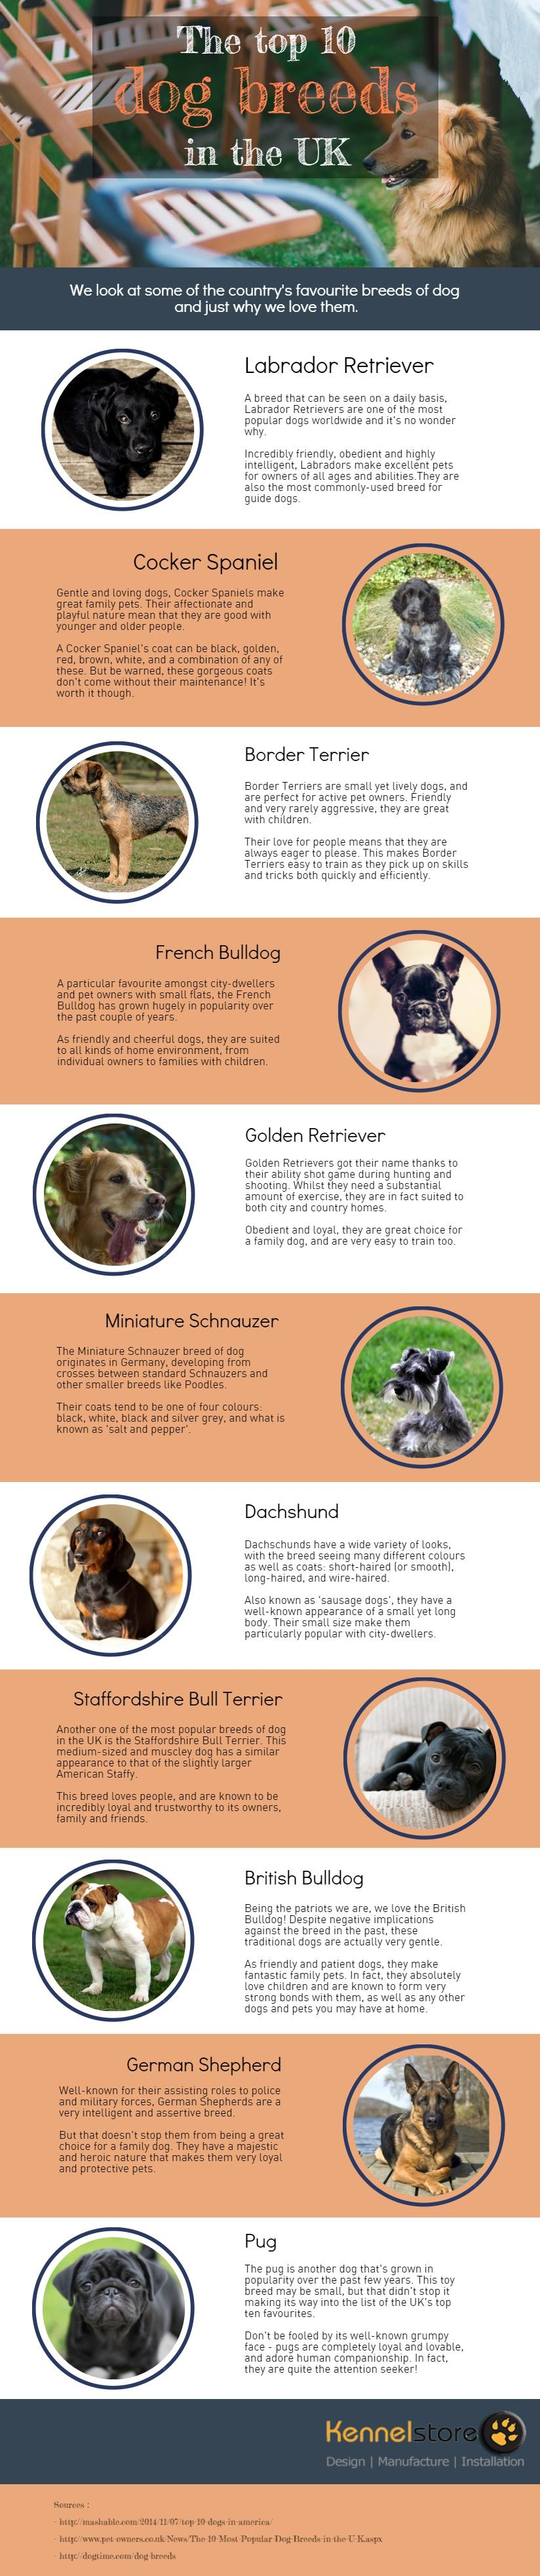 most-popular-breeds-infographic